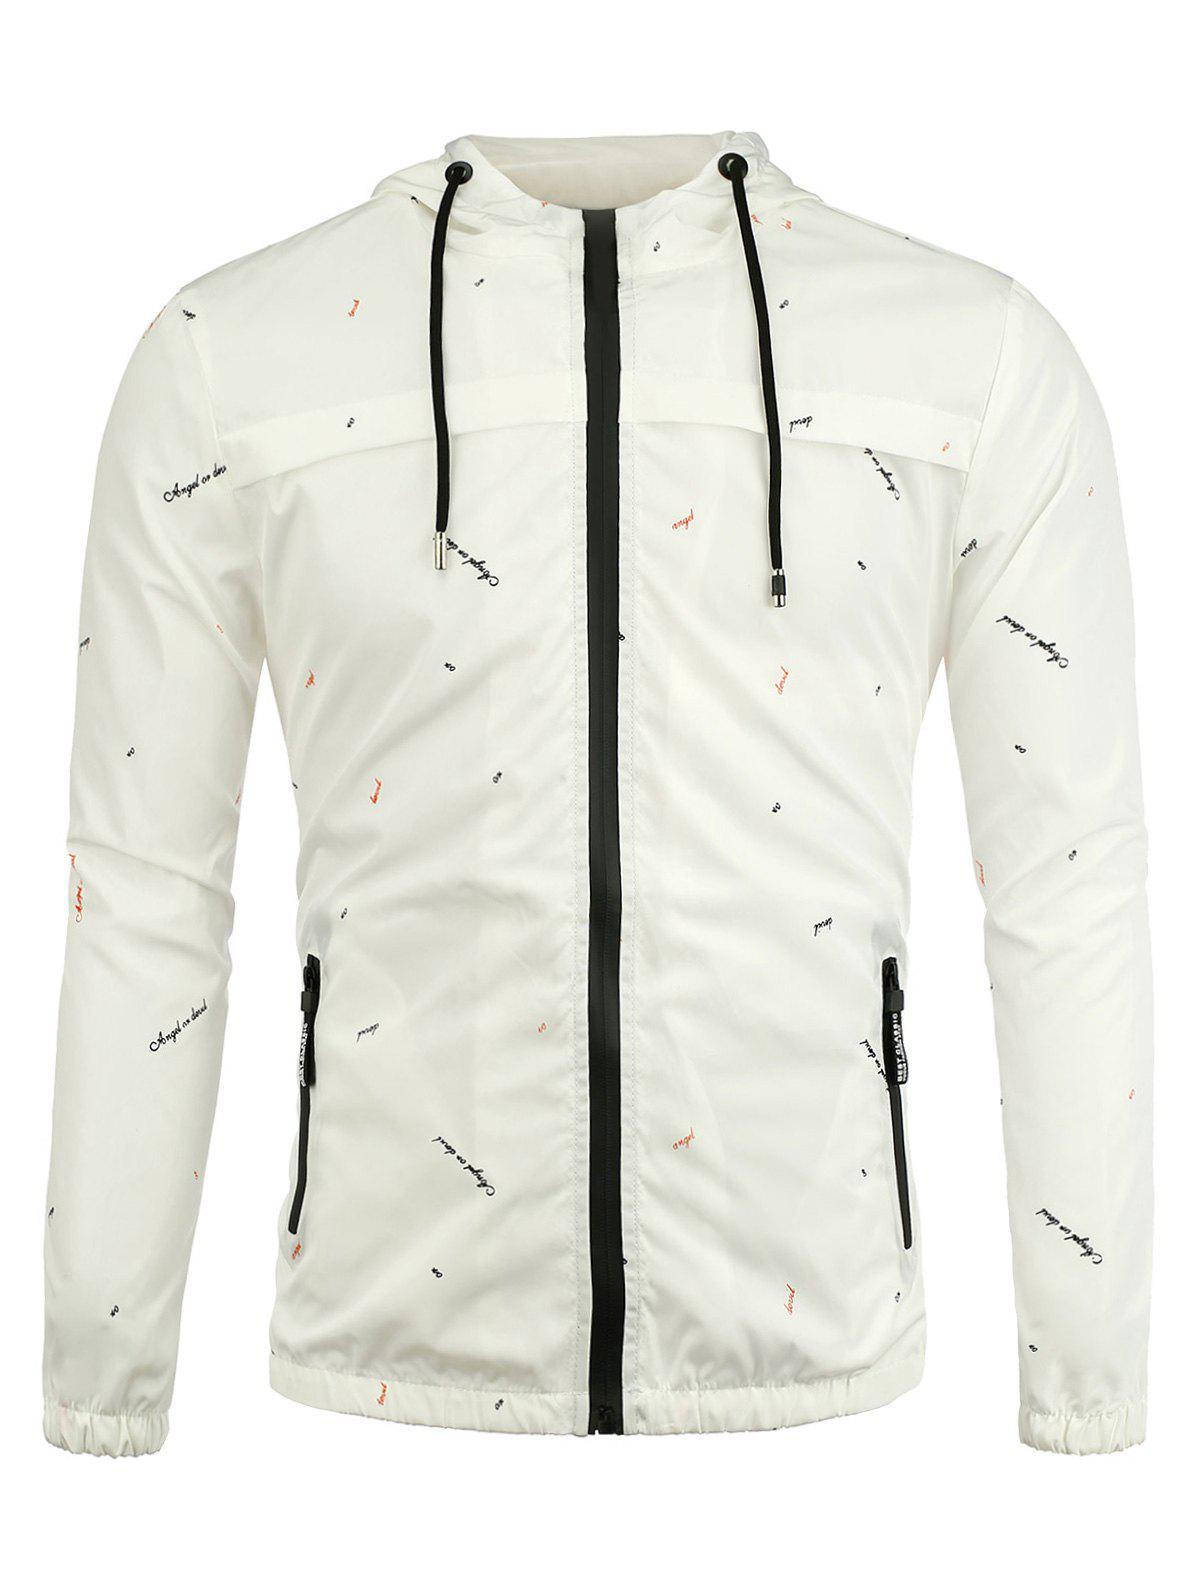 Zip Up Graphic Print Hooded Jacket - WHITE M